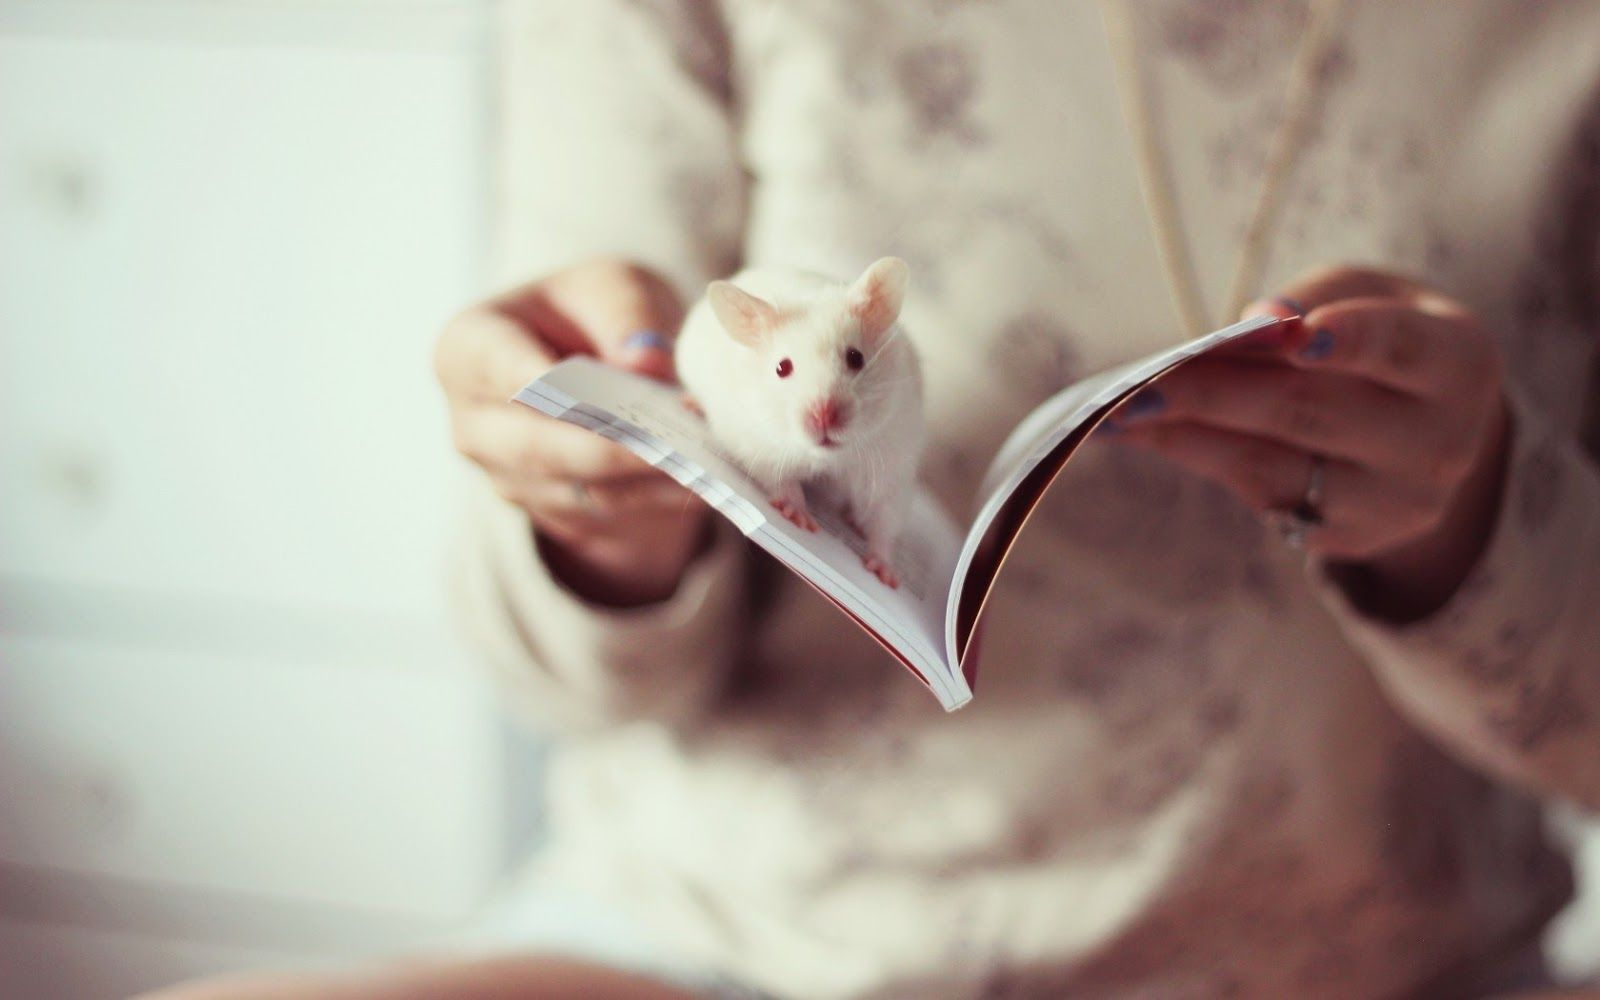 White Rat Wallpapers, Image, Photos, Pictures & Pics